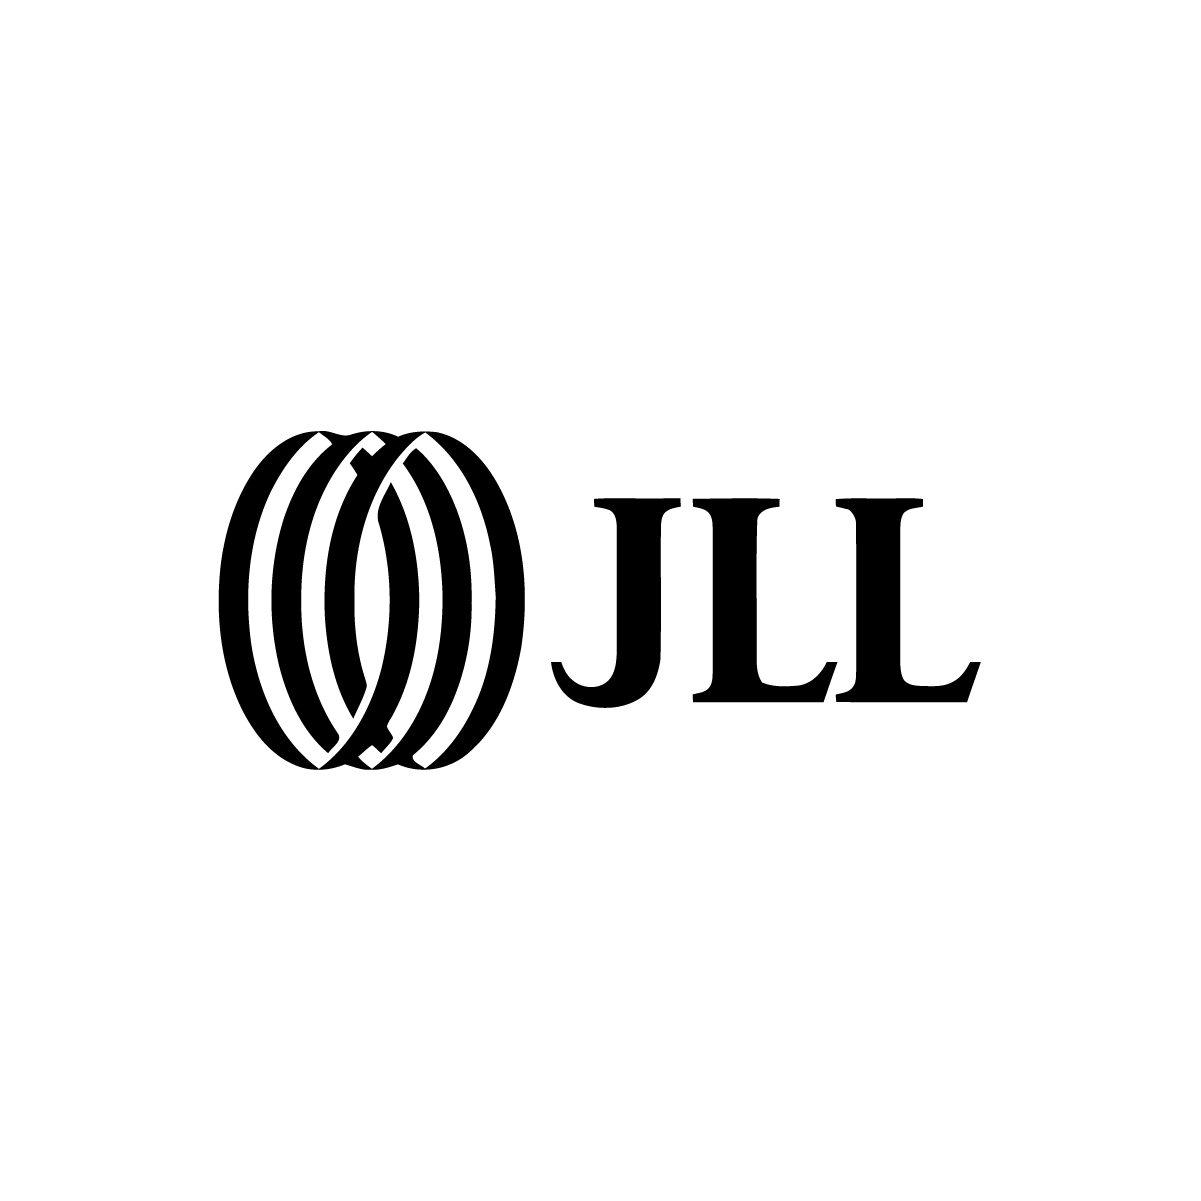 JLL-01-01.png